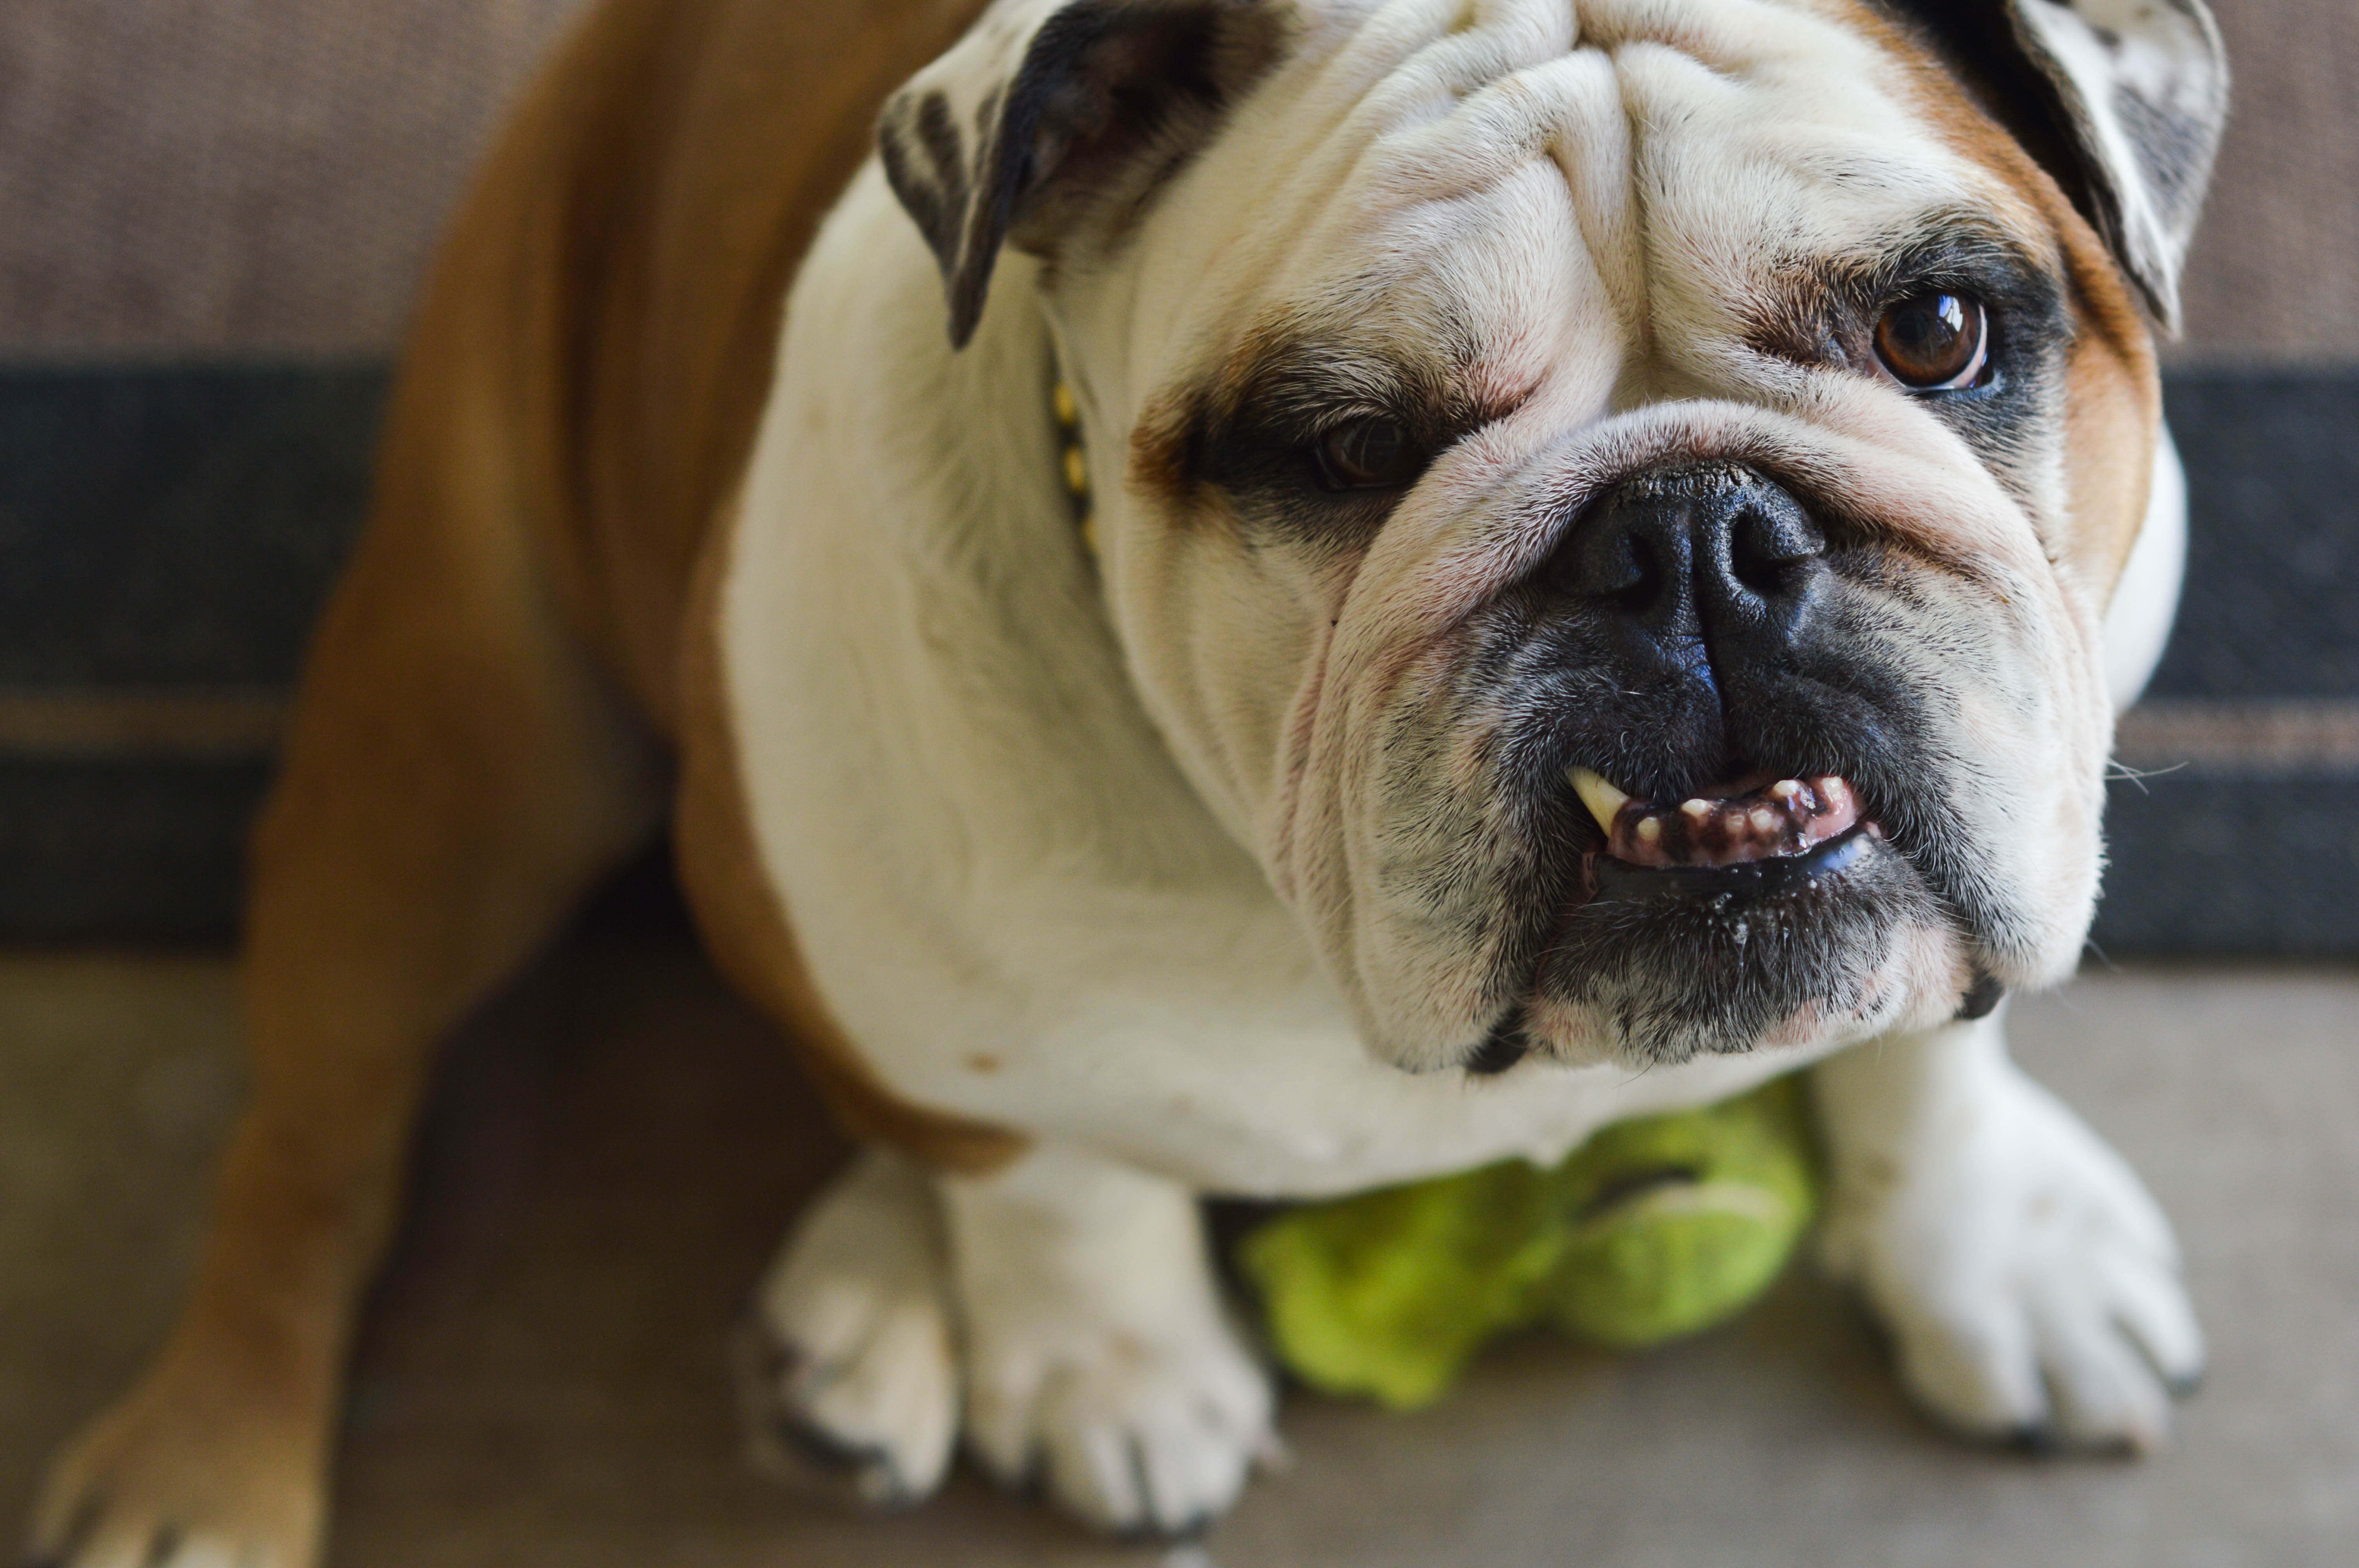 85741 download wallpaper Animals, Bulldog, Dog, Muzzle, Grin screensavers and pictures for free